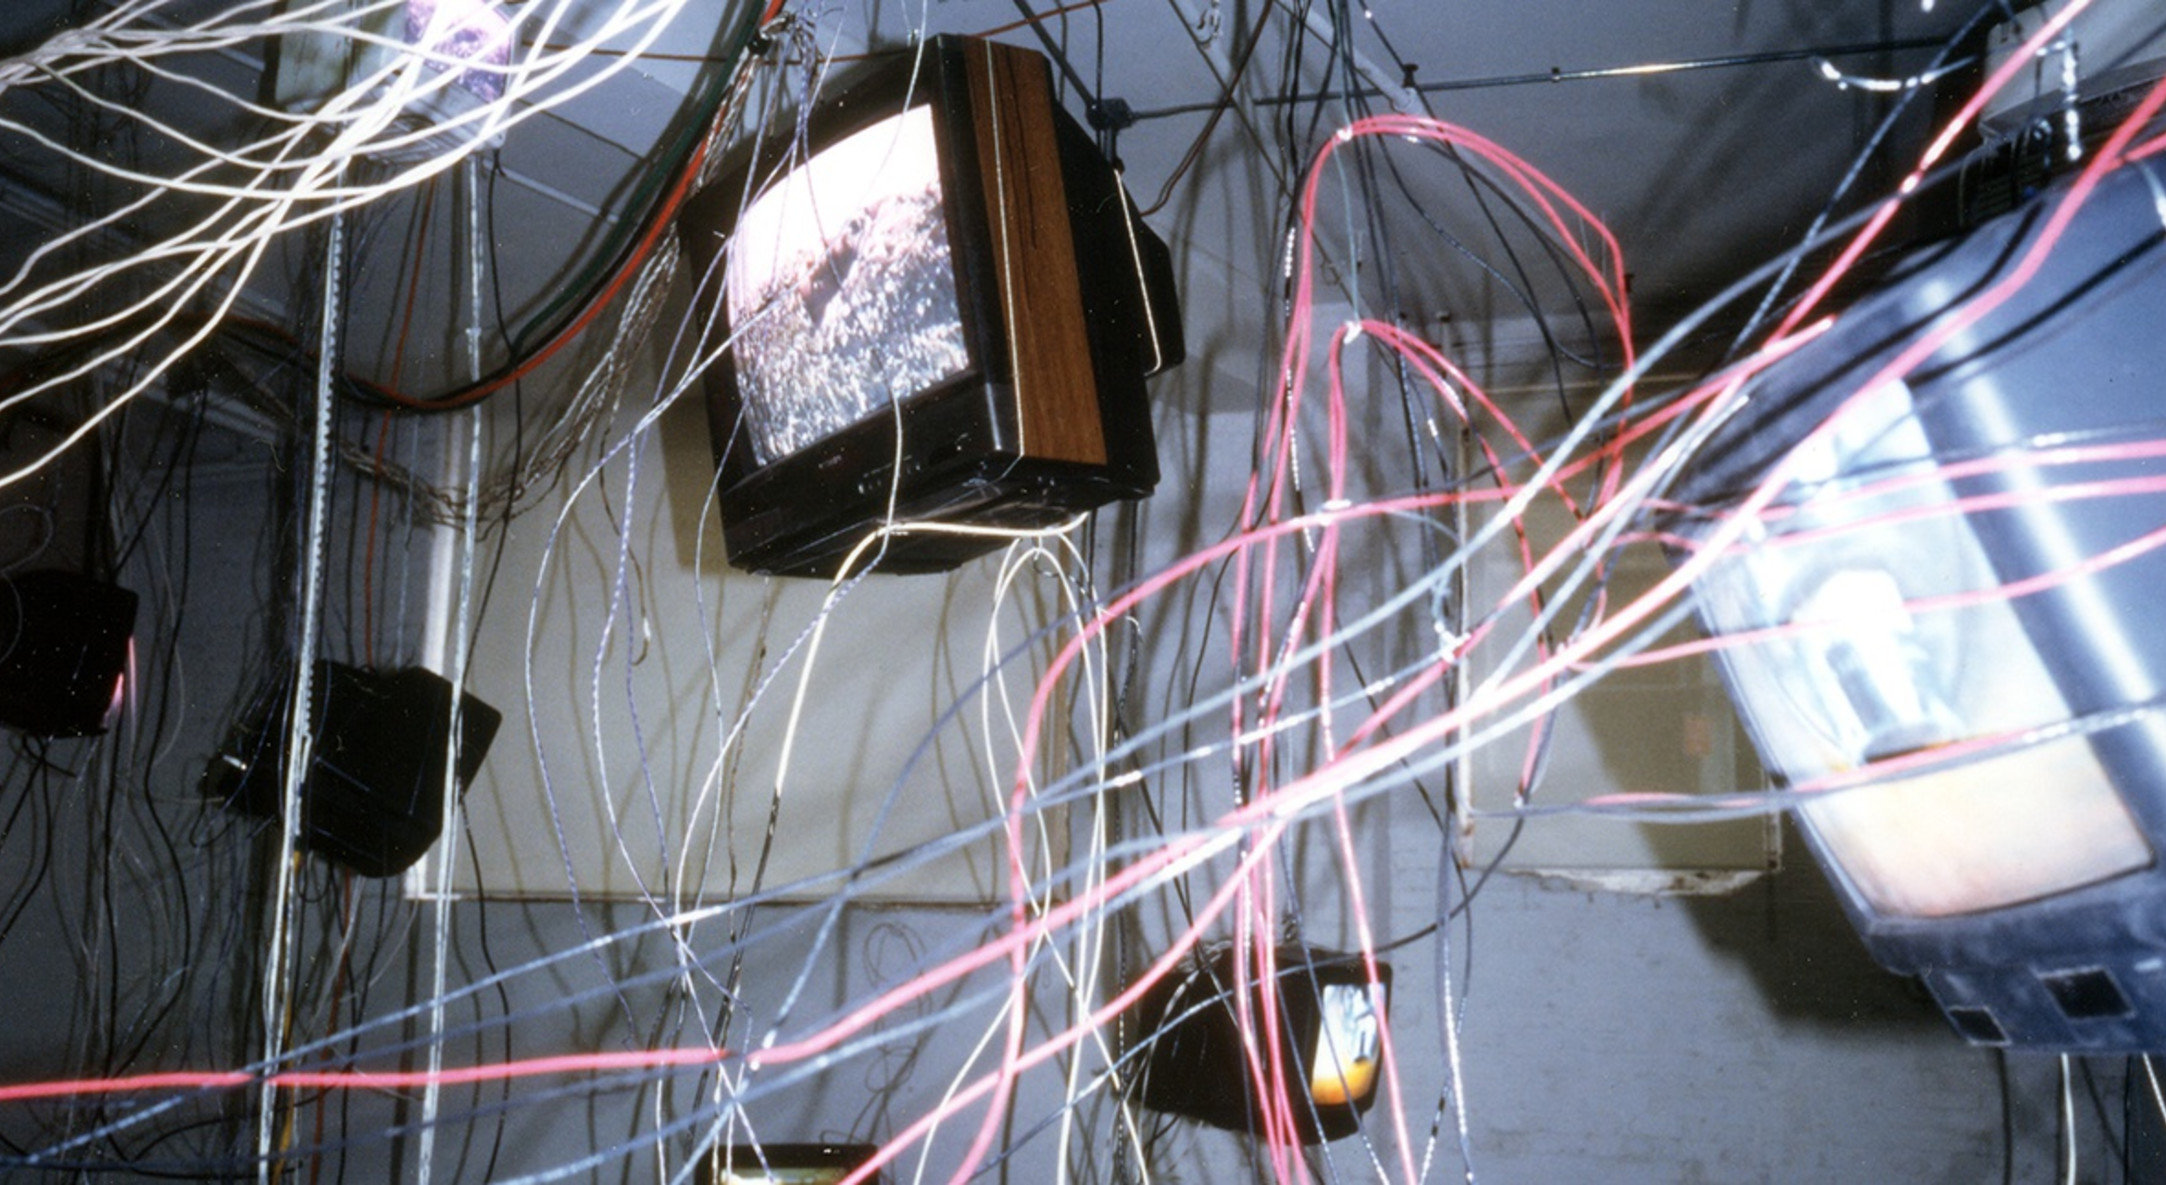 Carolee Schneemann, More Wrong Things, 2001, Fourteen video monitors with video loops suspended from the ceiling within an extended tangle of wires, cables, and cords, Dimensions vary with installation